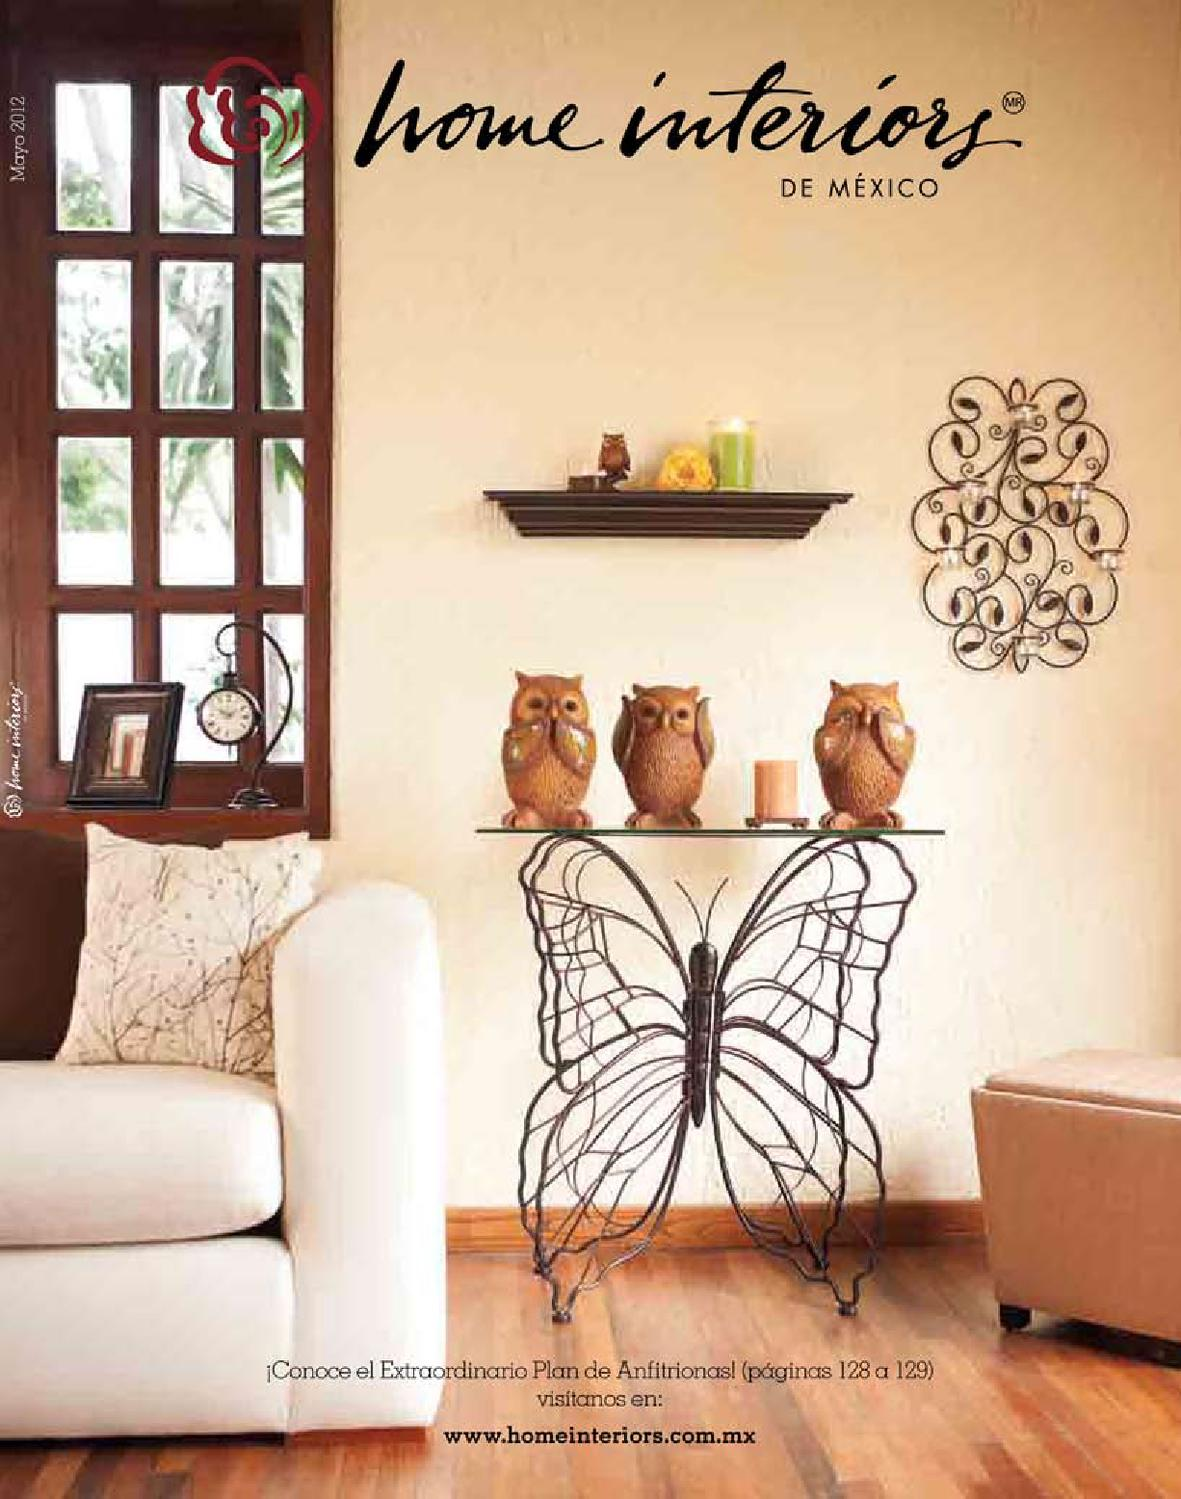 Catalogo De Home Interiors 2006 Home Design And Style